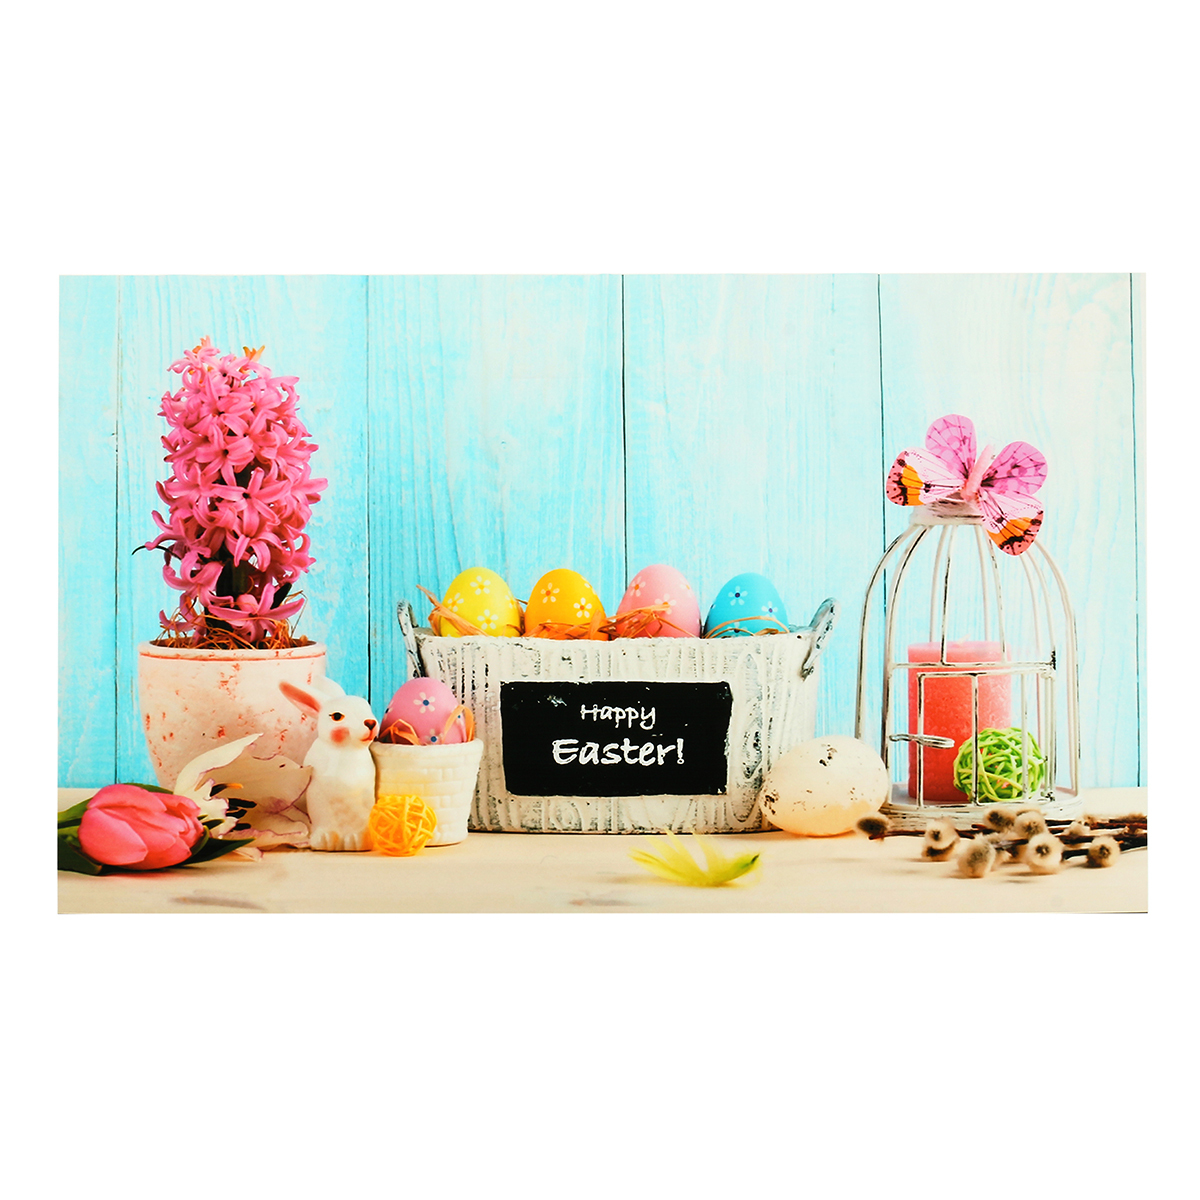 7x5ft/5x3ft Happy Easter Theme Thin Vinyl Photography Backdrop Background Studio